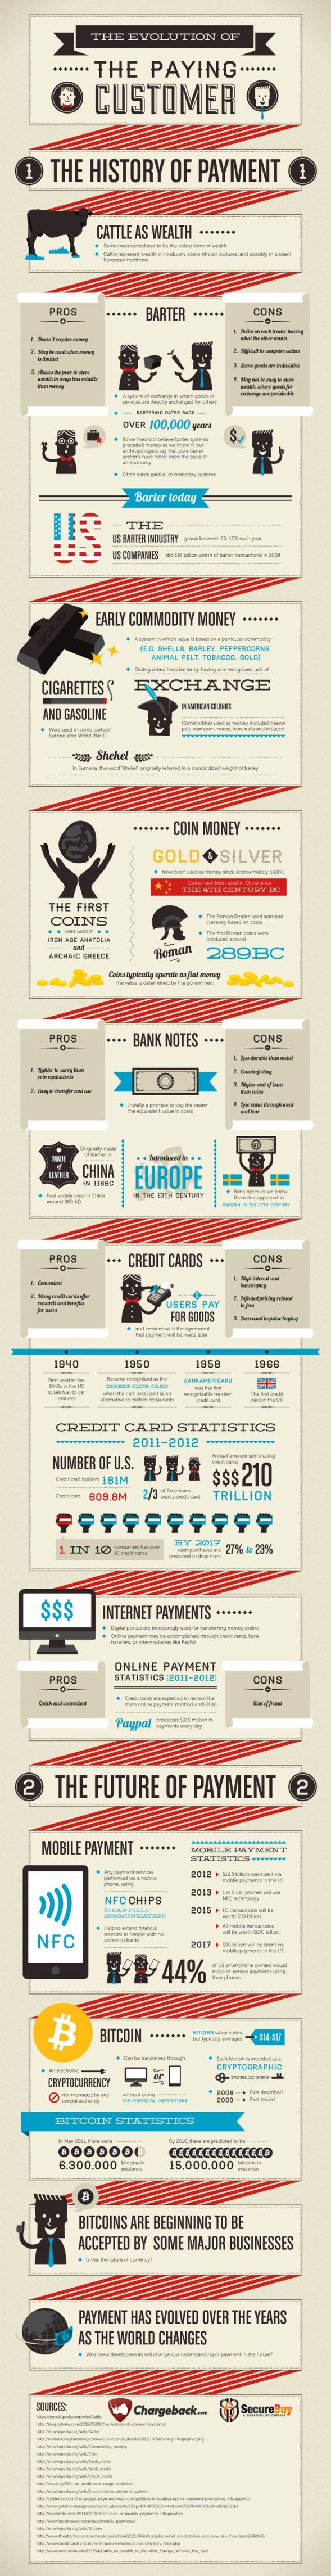 Just another #bitcoin #infographic - The evolution of the paying customer. The history & future of payment.